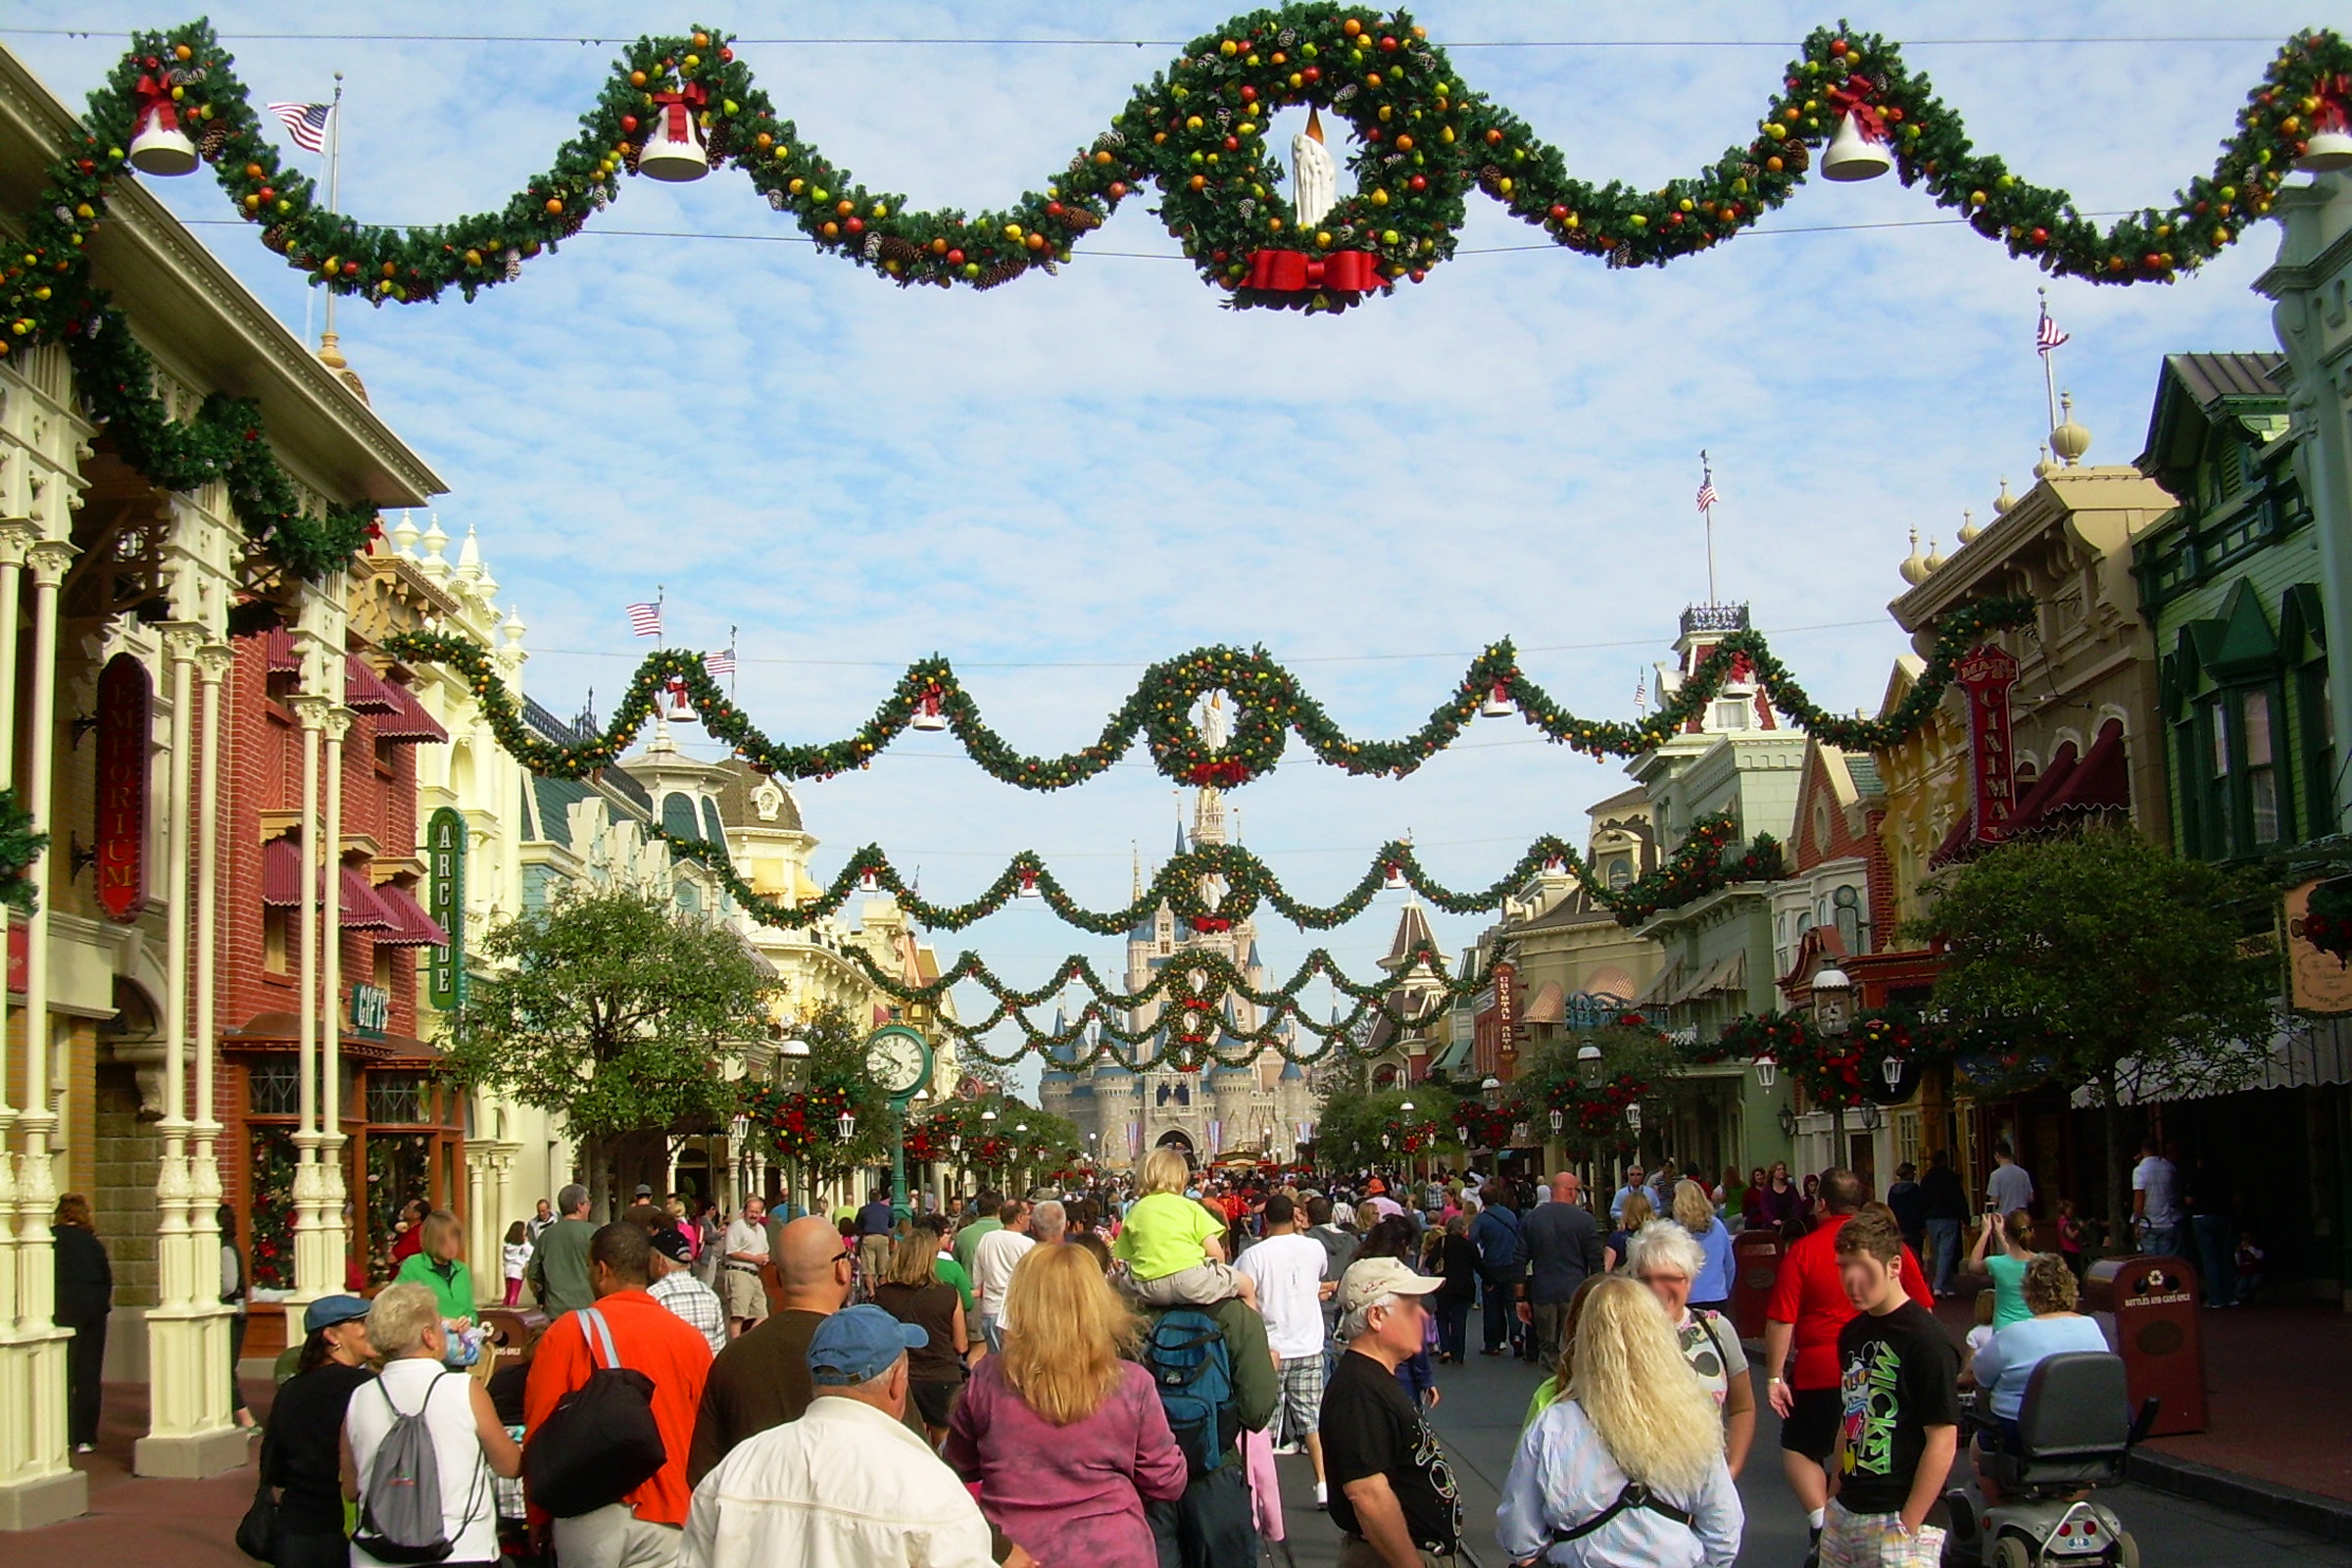 Christmas at Disney World, USA - This is one of the best alternative Christmas getaways. Read the article to discover more unique Christmas destinations. #christmas #christmasdestinations #christmasholidays #christmastrips #uniquechristmas #unusualchristmas #alternativechristmas